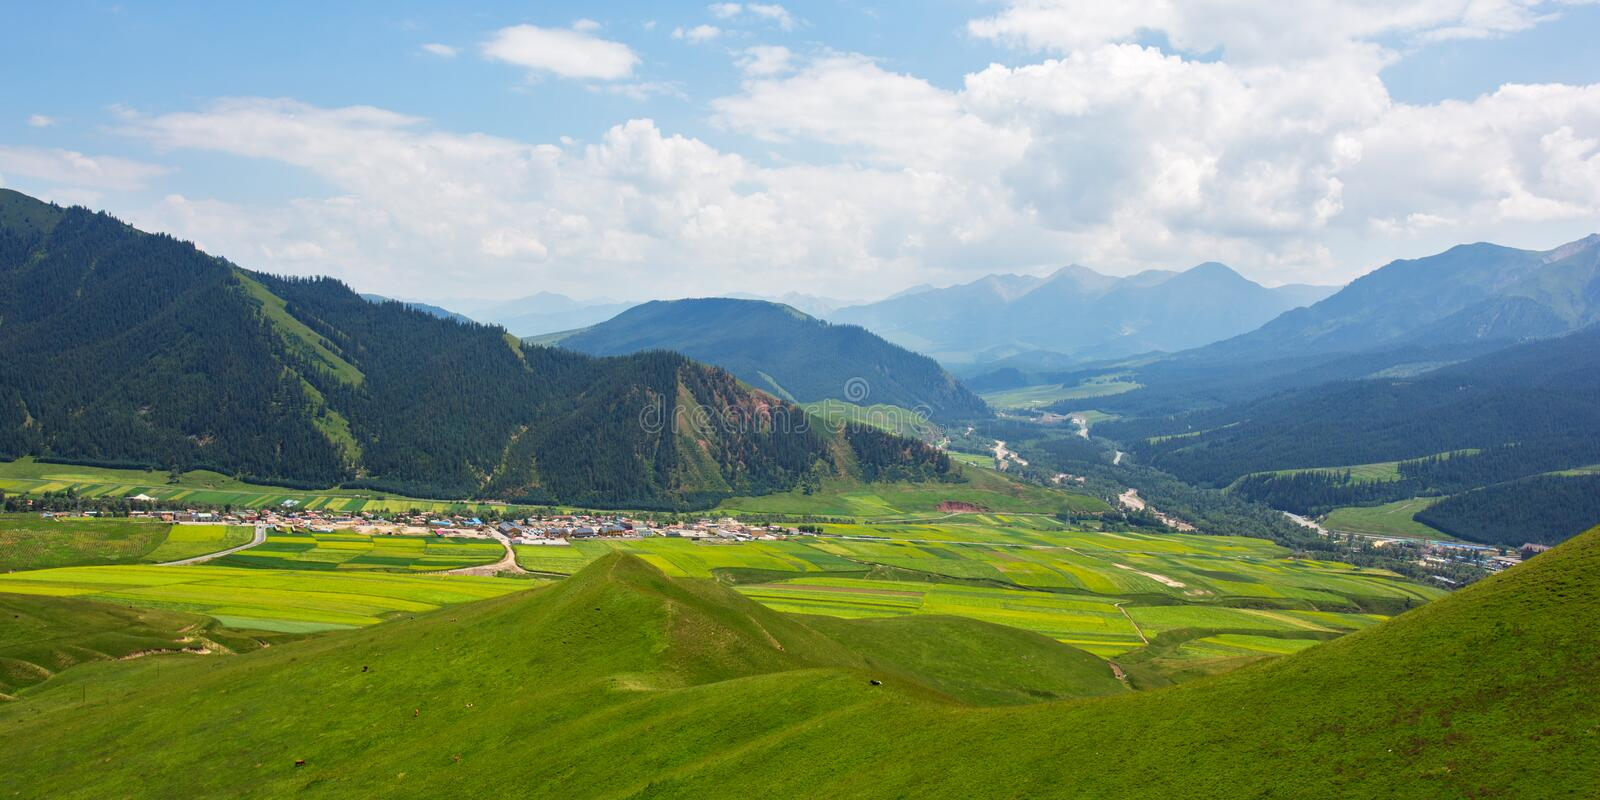 The villages in the valley 2. The villages in the valley, view from the Qilian Zhuo mountain stock images